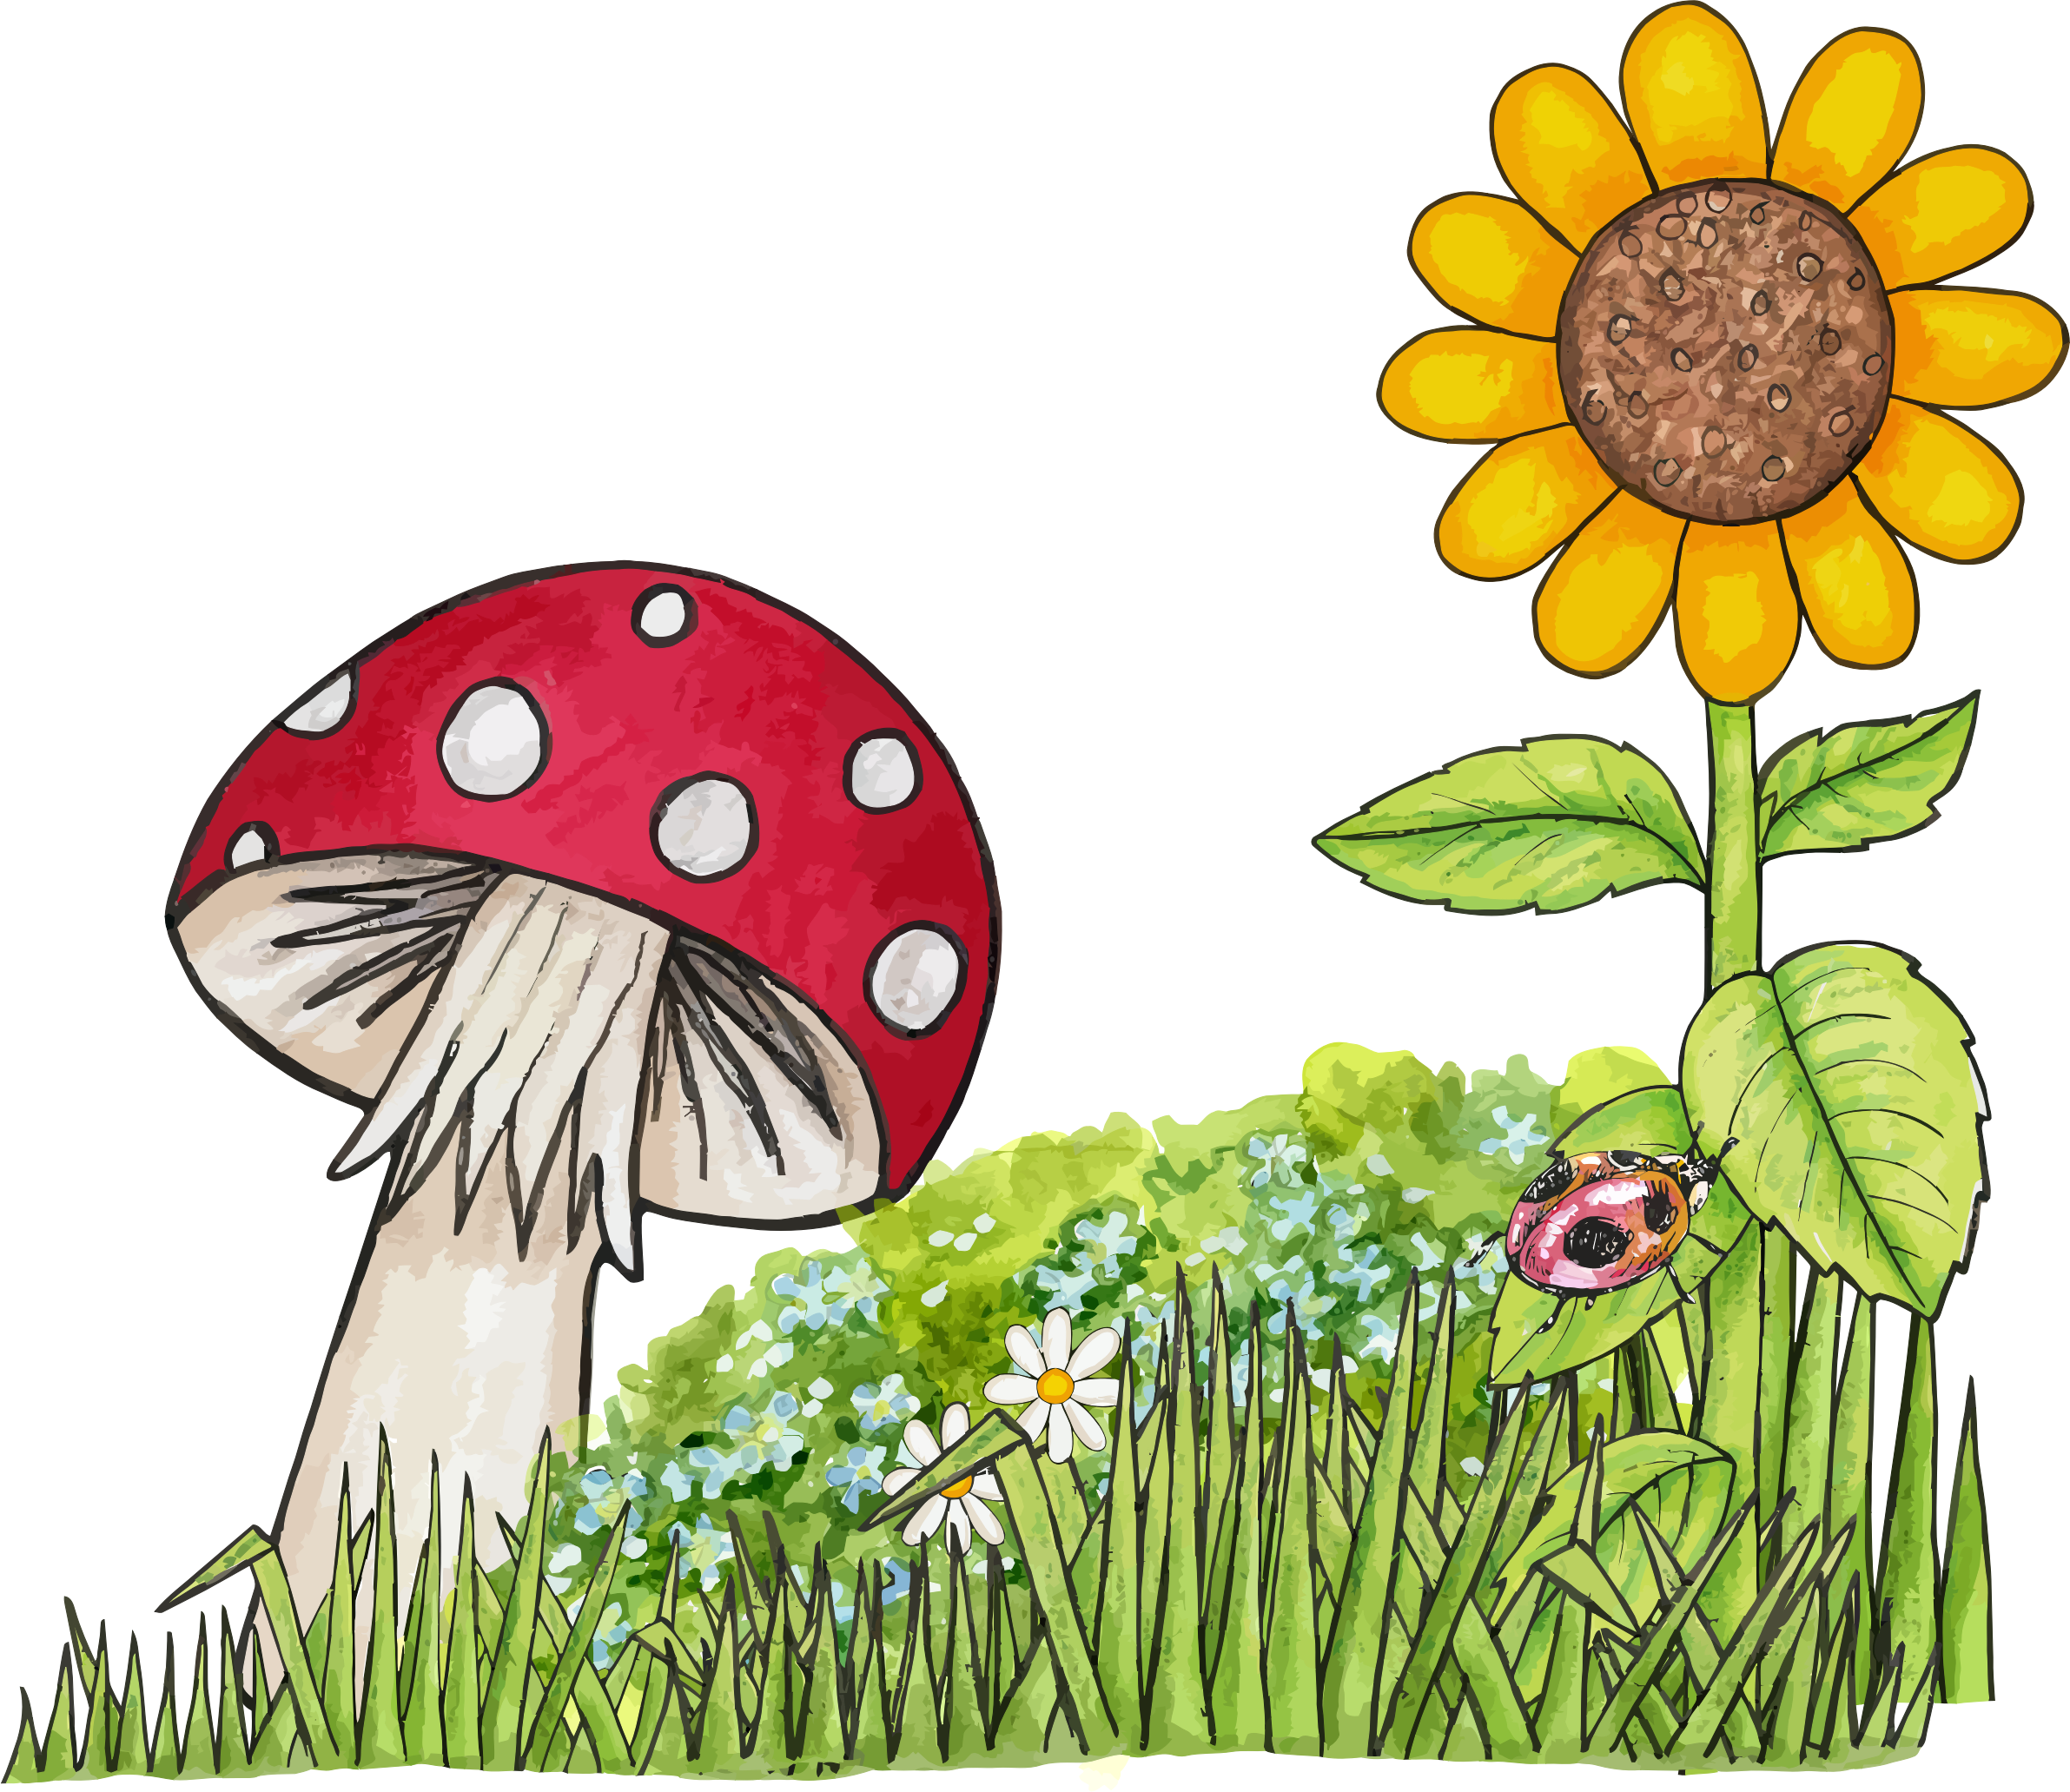 Toadstool big image png. Clipart grass scene